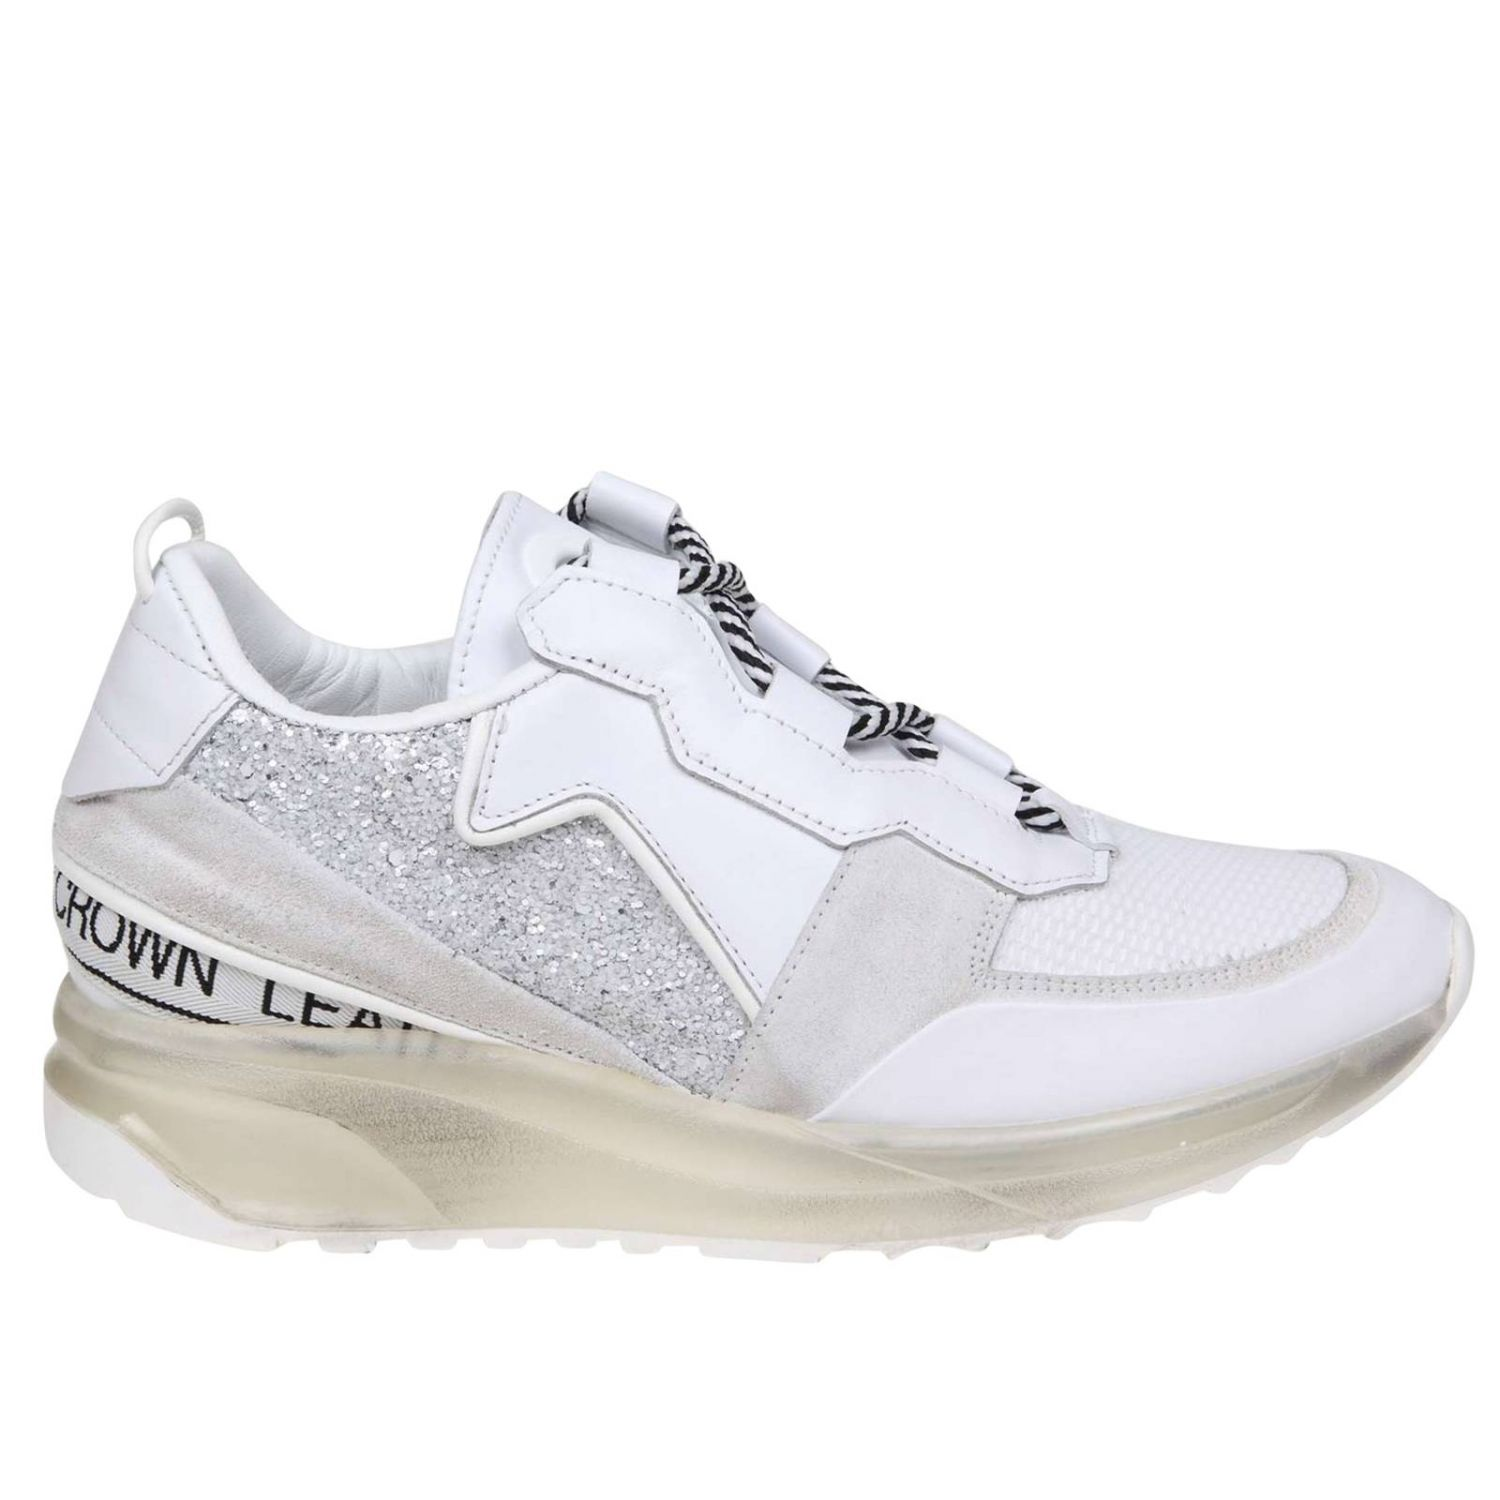 Sneakers women Leather Crown white 1